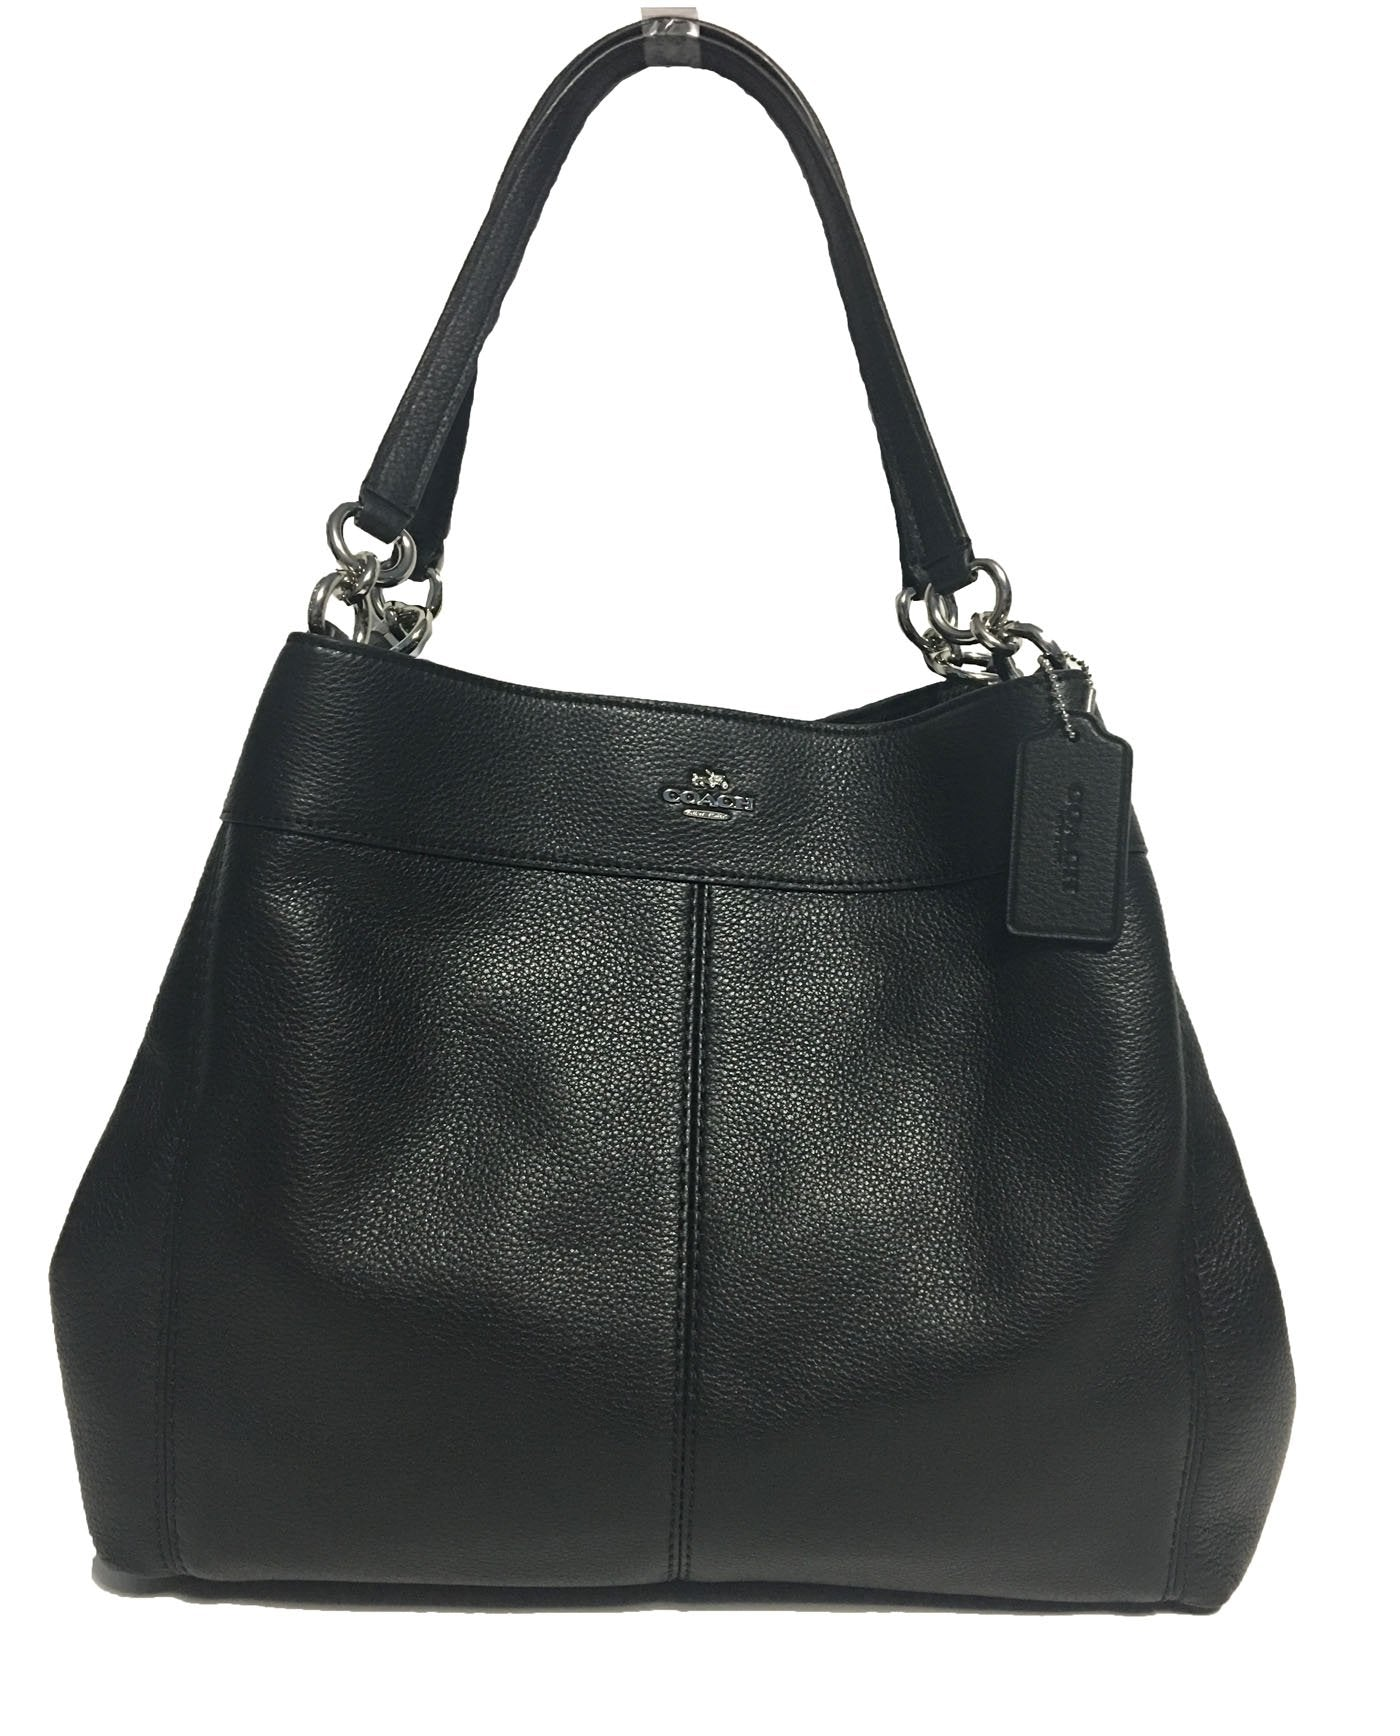 24be08261f38 Coach Lexy Shoulder Bag In Pebbled Leather Black With Silver Hardware F57545